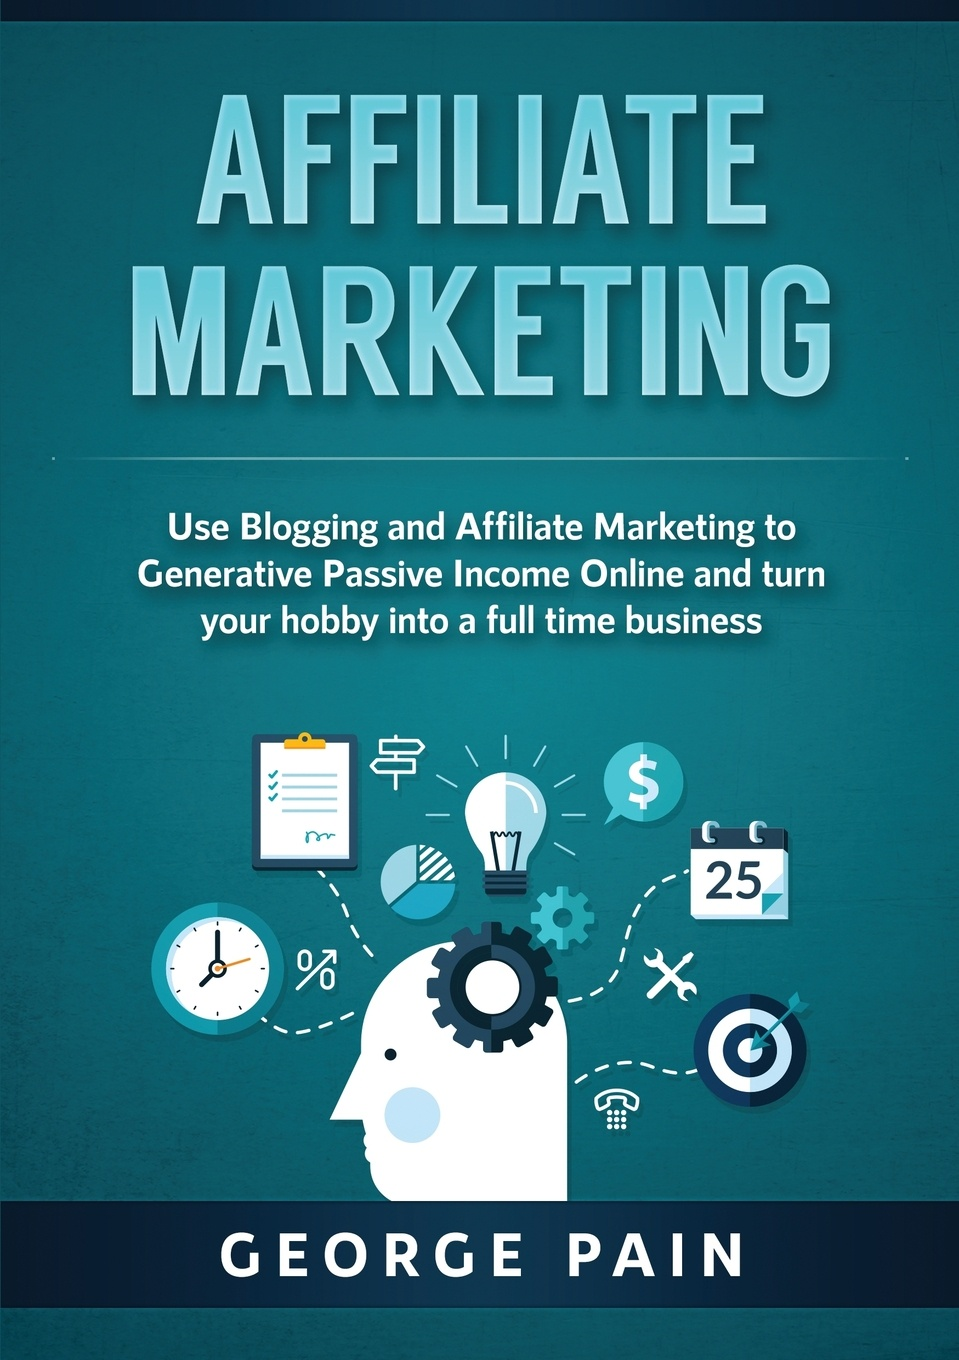 George Pain Affiliate Marketing. Use Blogging and Affiliate Marketing to Generative Passive Income Online and turn your hobby into a full time business 20pcs lot tps61221dckr tps61221